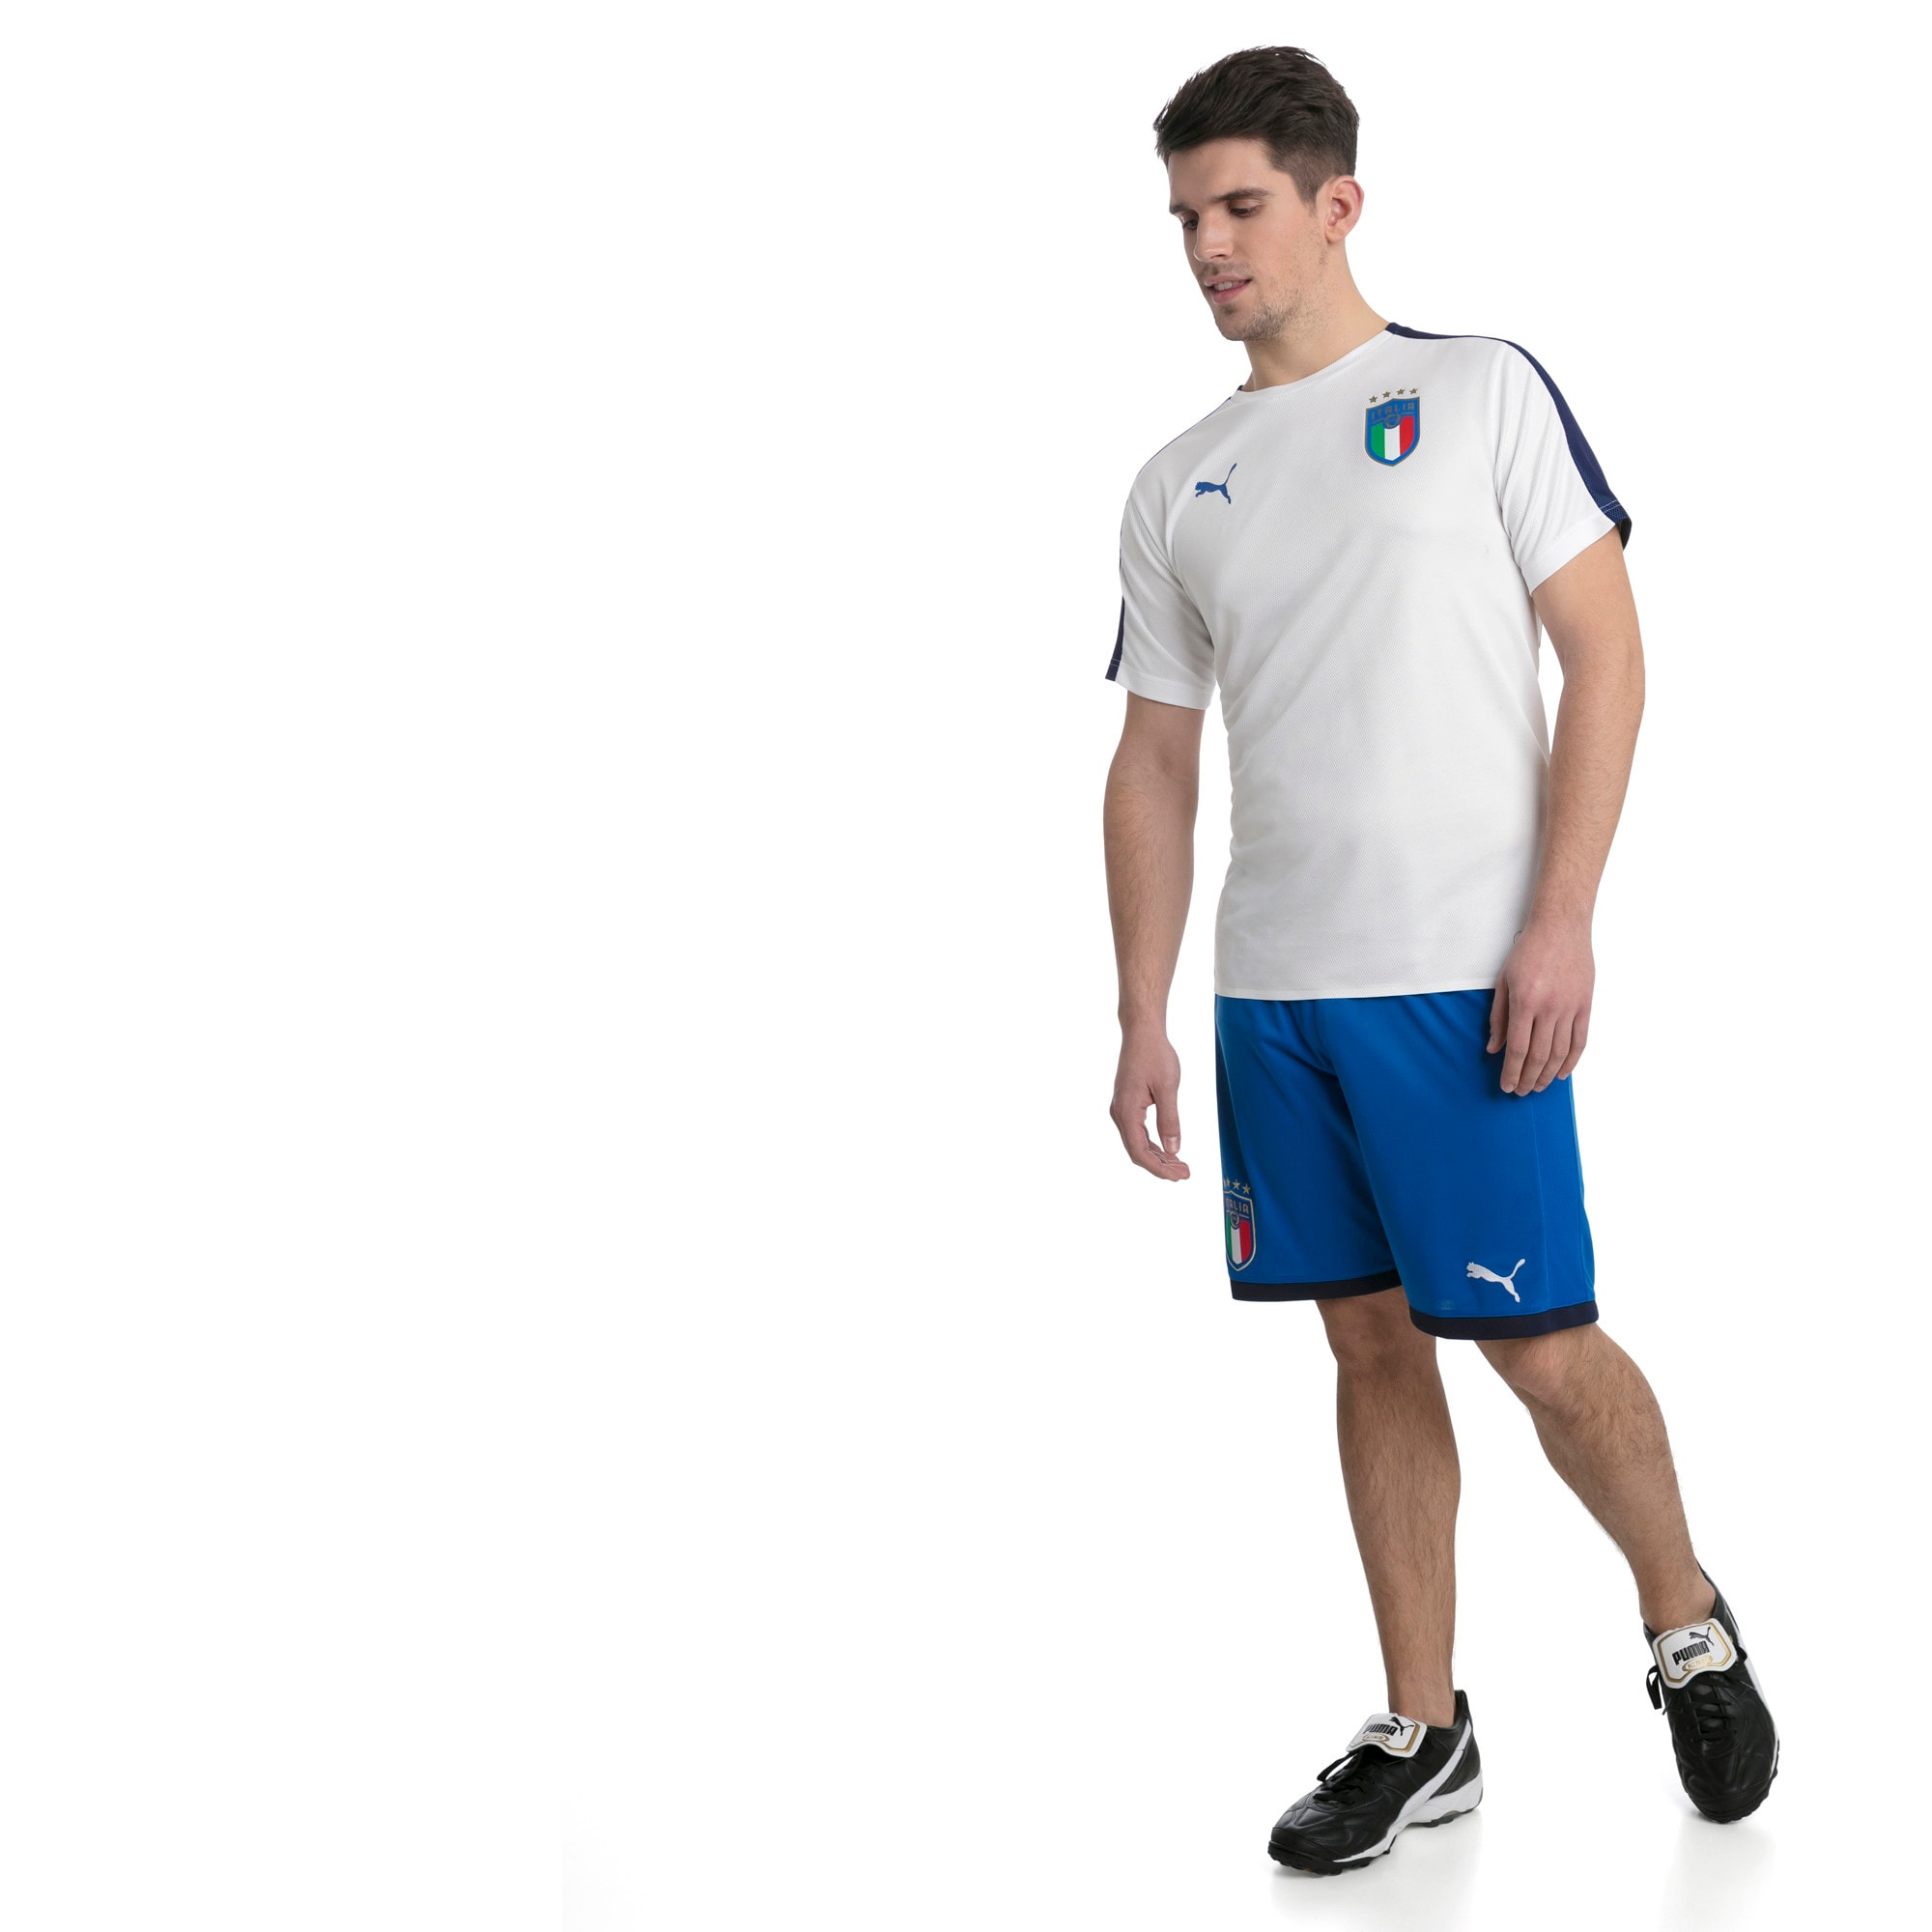 Thumbnail 5 of Italia Stadium Jersey, Puma White-Team power blue, medium